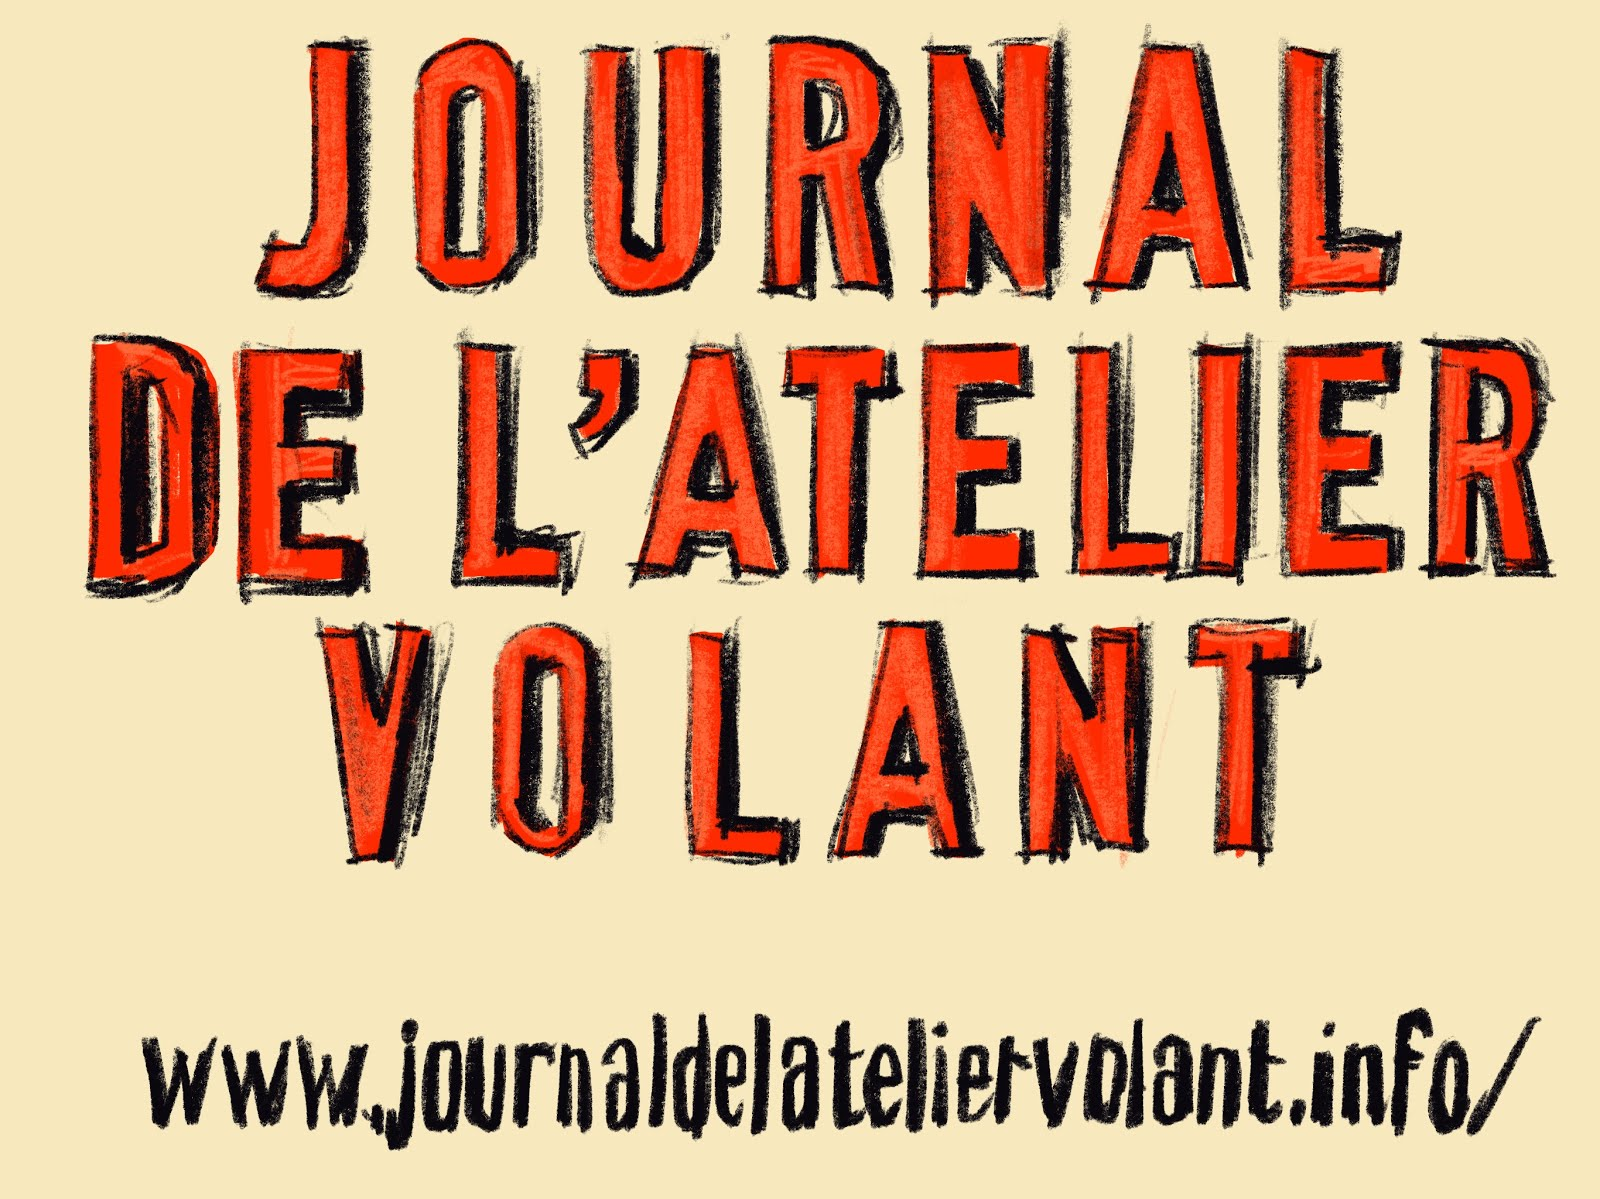 Journal de l'Atelier Volant